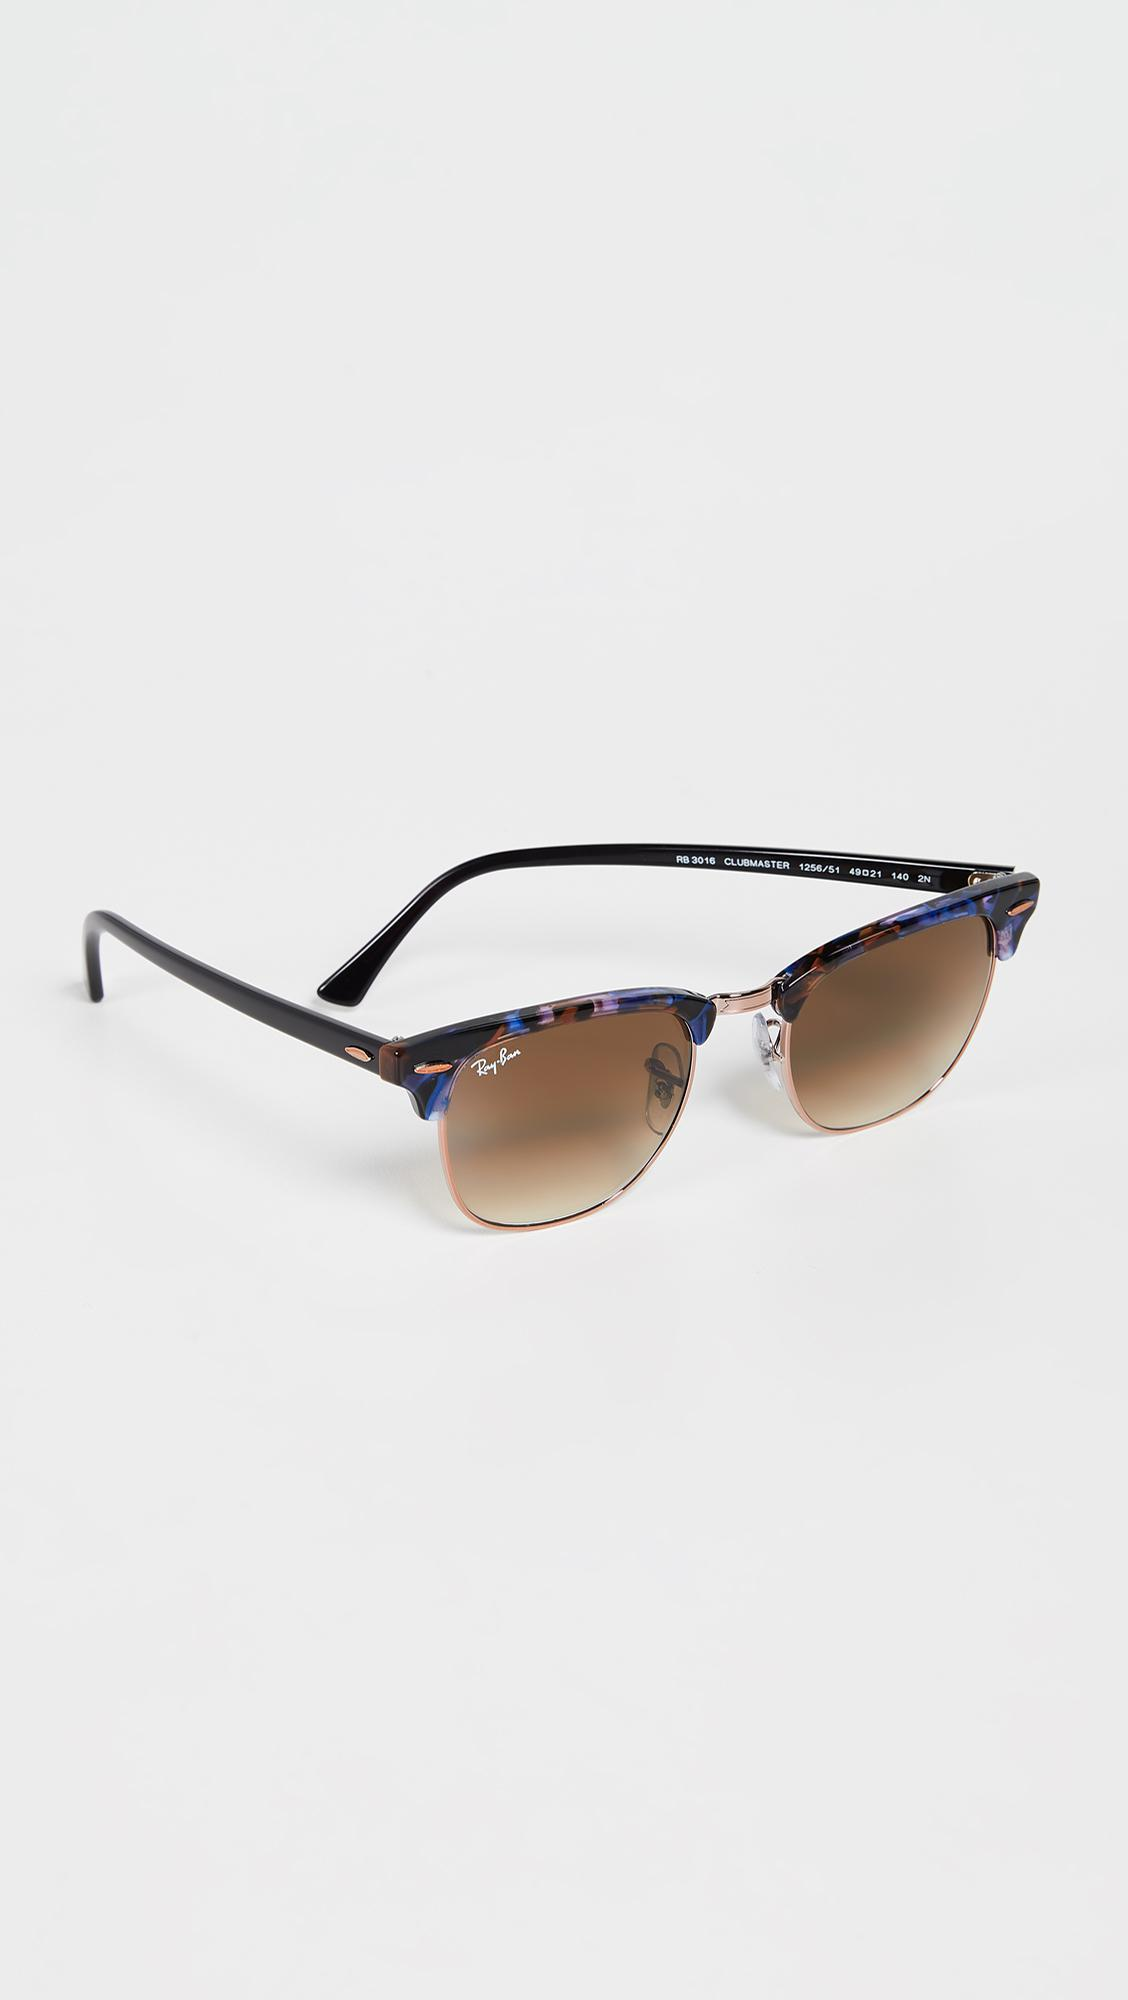 8b47219691 Ray-Ban - Brown Rb3016 Clubmaster Sunglasses for Men - Lyst. View fullscreen